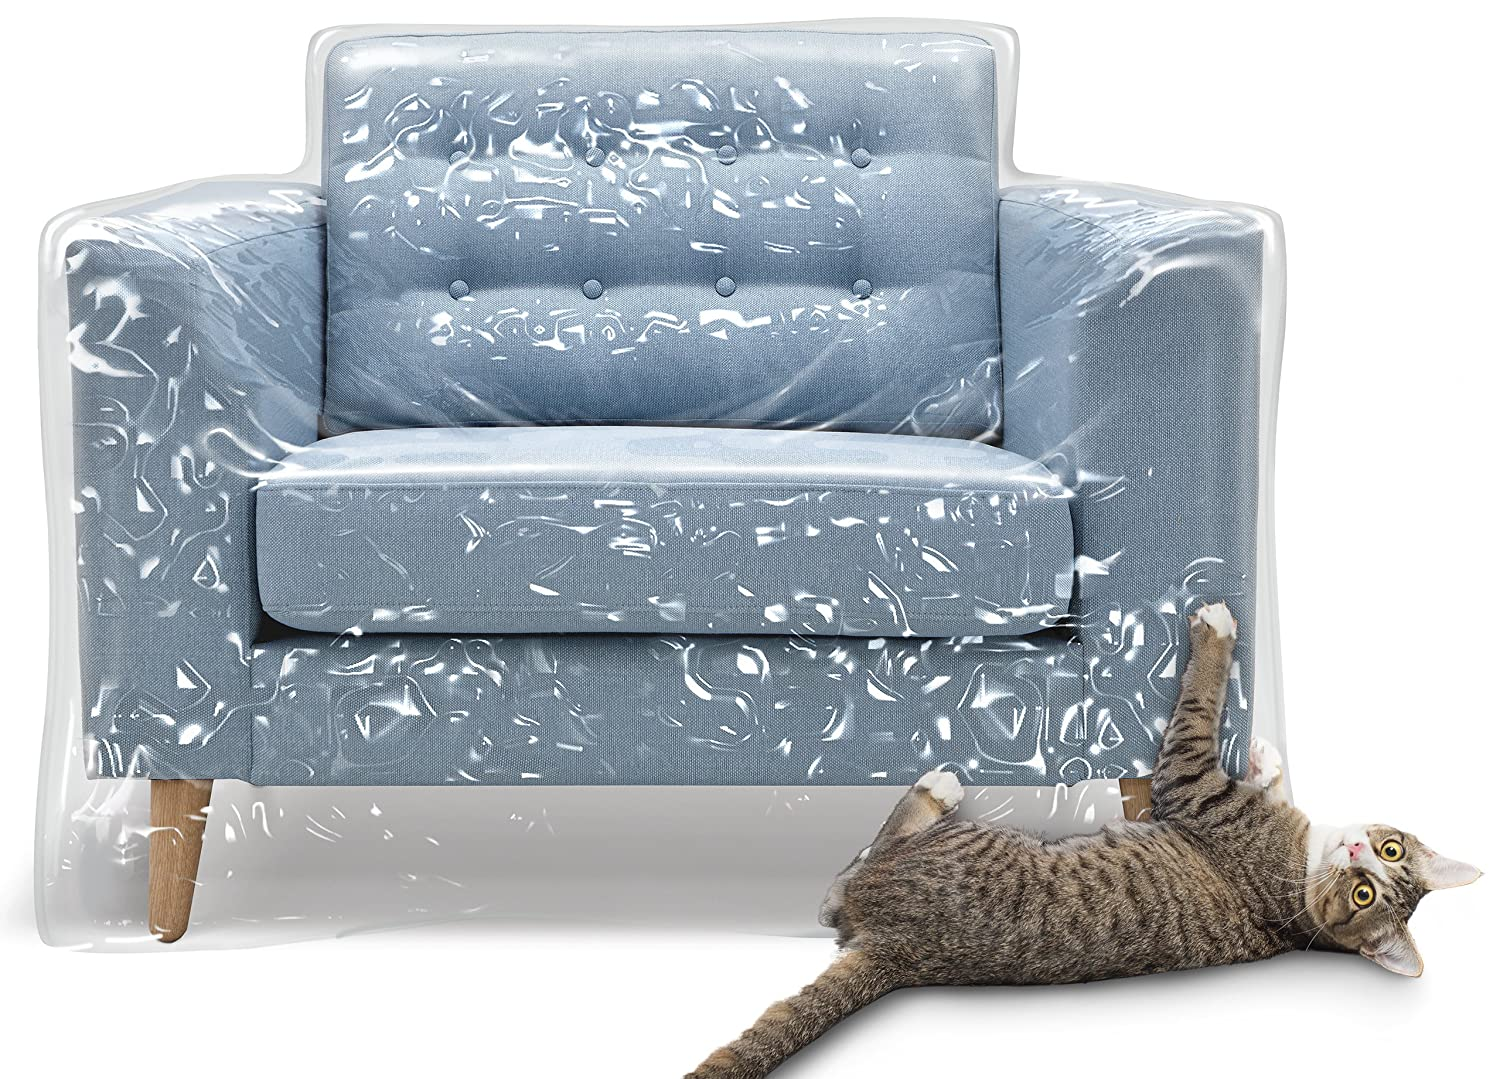 Kitty Cat Protector Plastic Recliner Armchair Cover For Pets | Cat Scratching Protector Clawing Deterrent | Heavy Duty Thick Clear Vinyl Chair Slipcover | Waterproof Plastic Furniture Covers For Storage And Moving